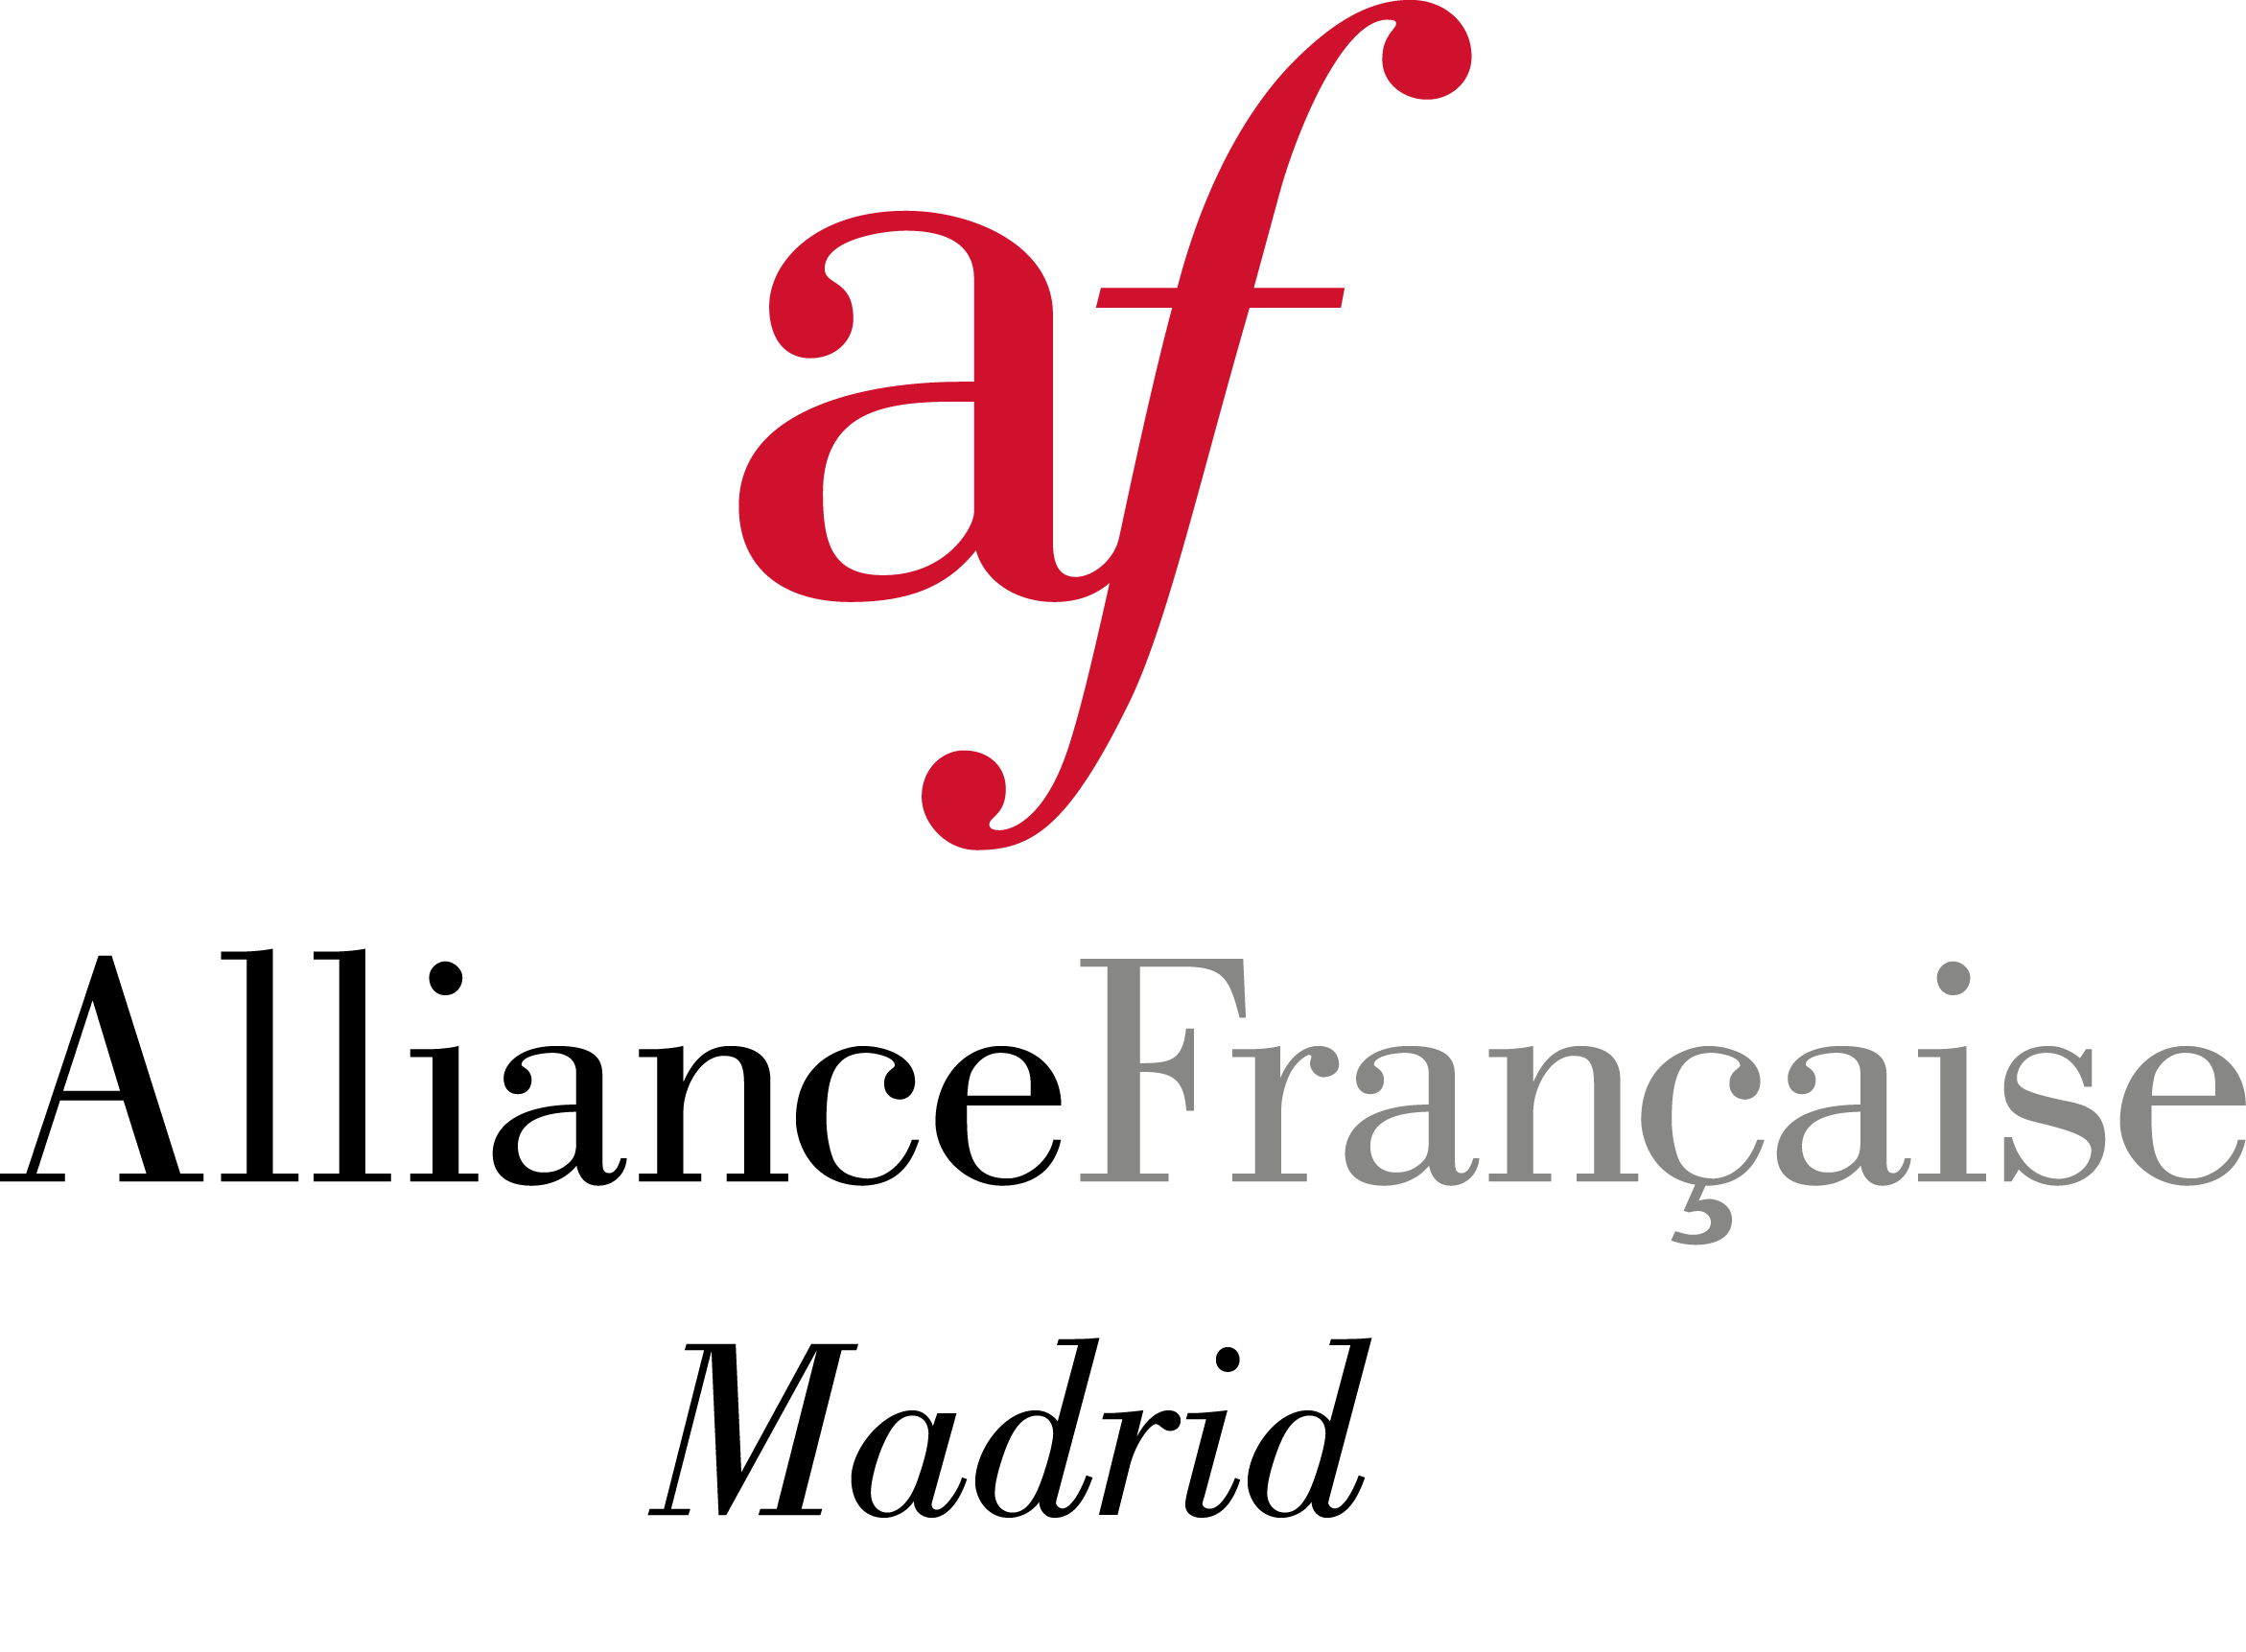 alliance française madrid